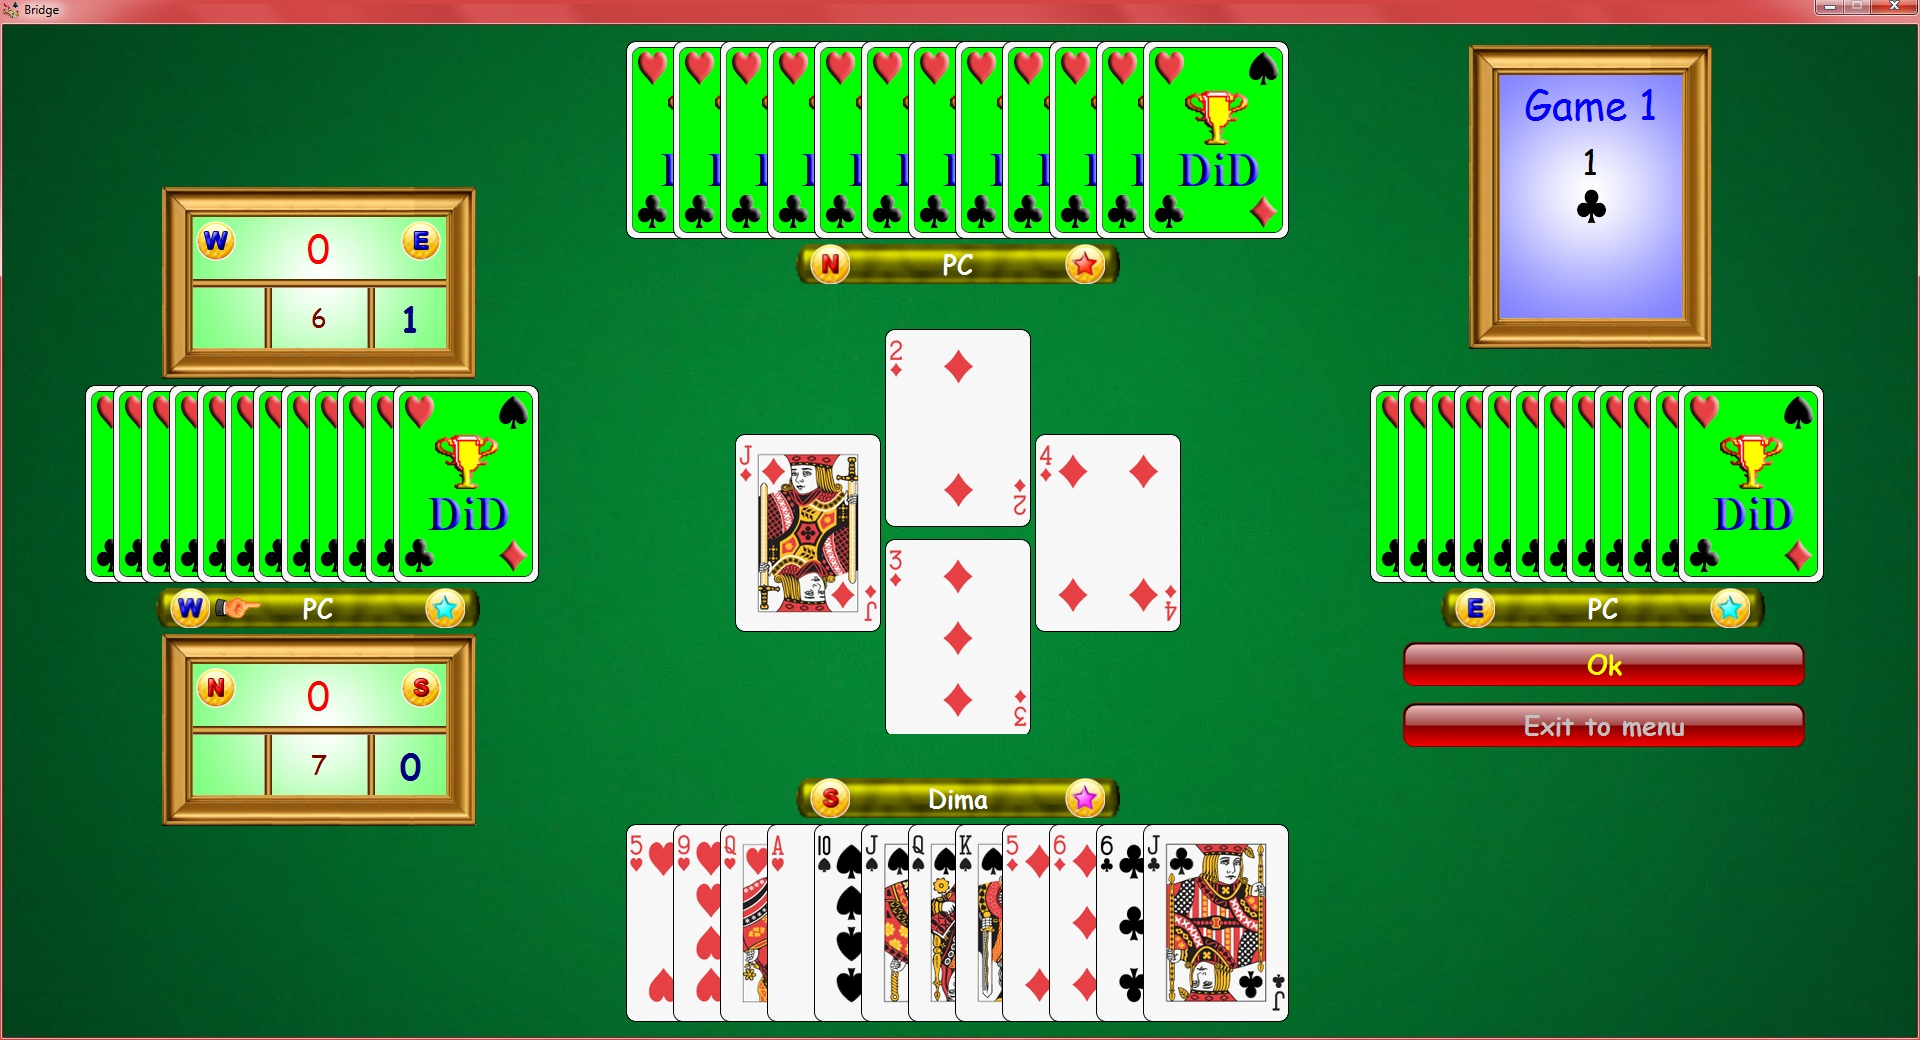 Bridge Game Online - Play This Free Online Card Game